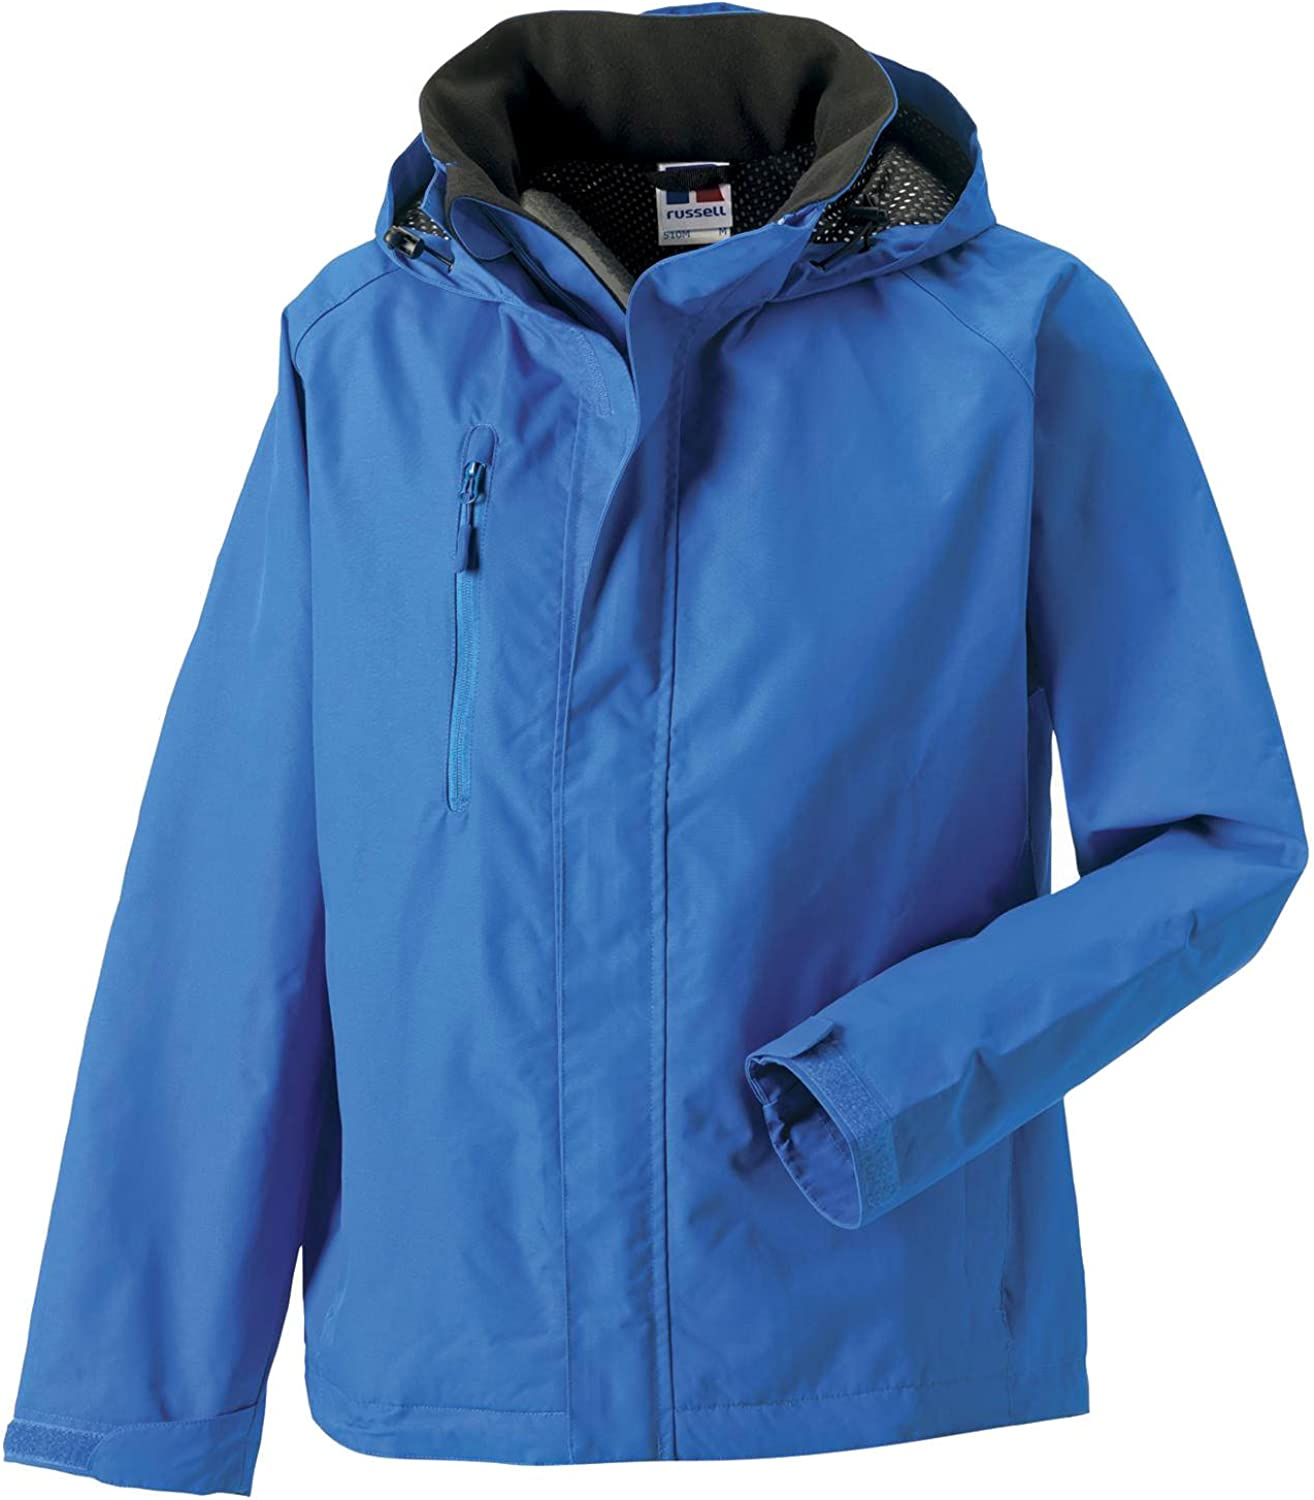 Ranking TOP7 Russell Collection Hydraplus 35% OFF 2000 jacket